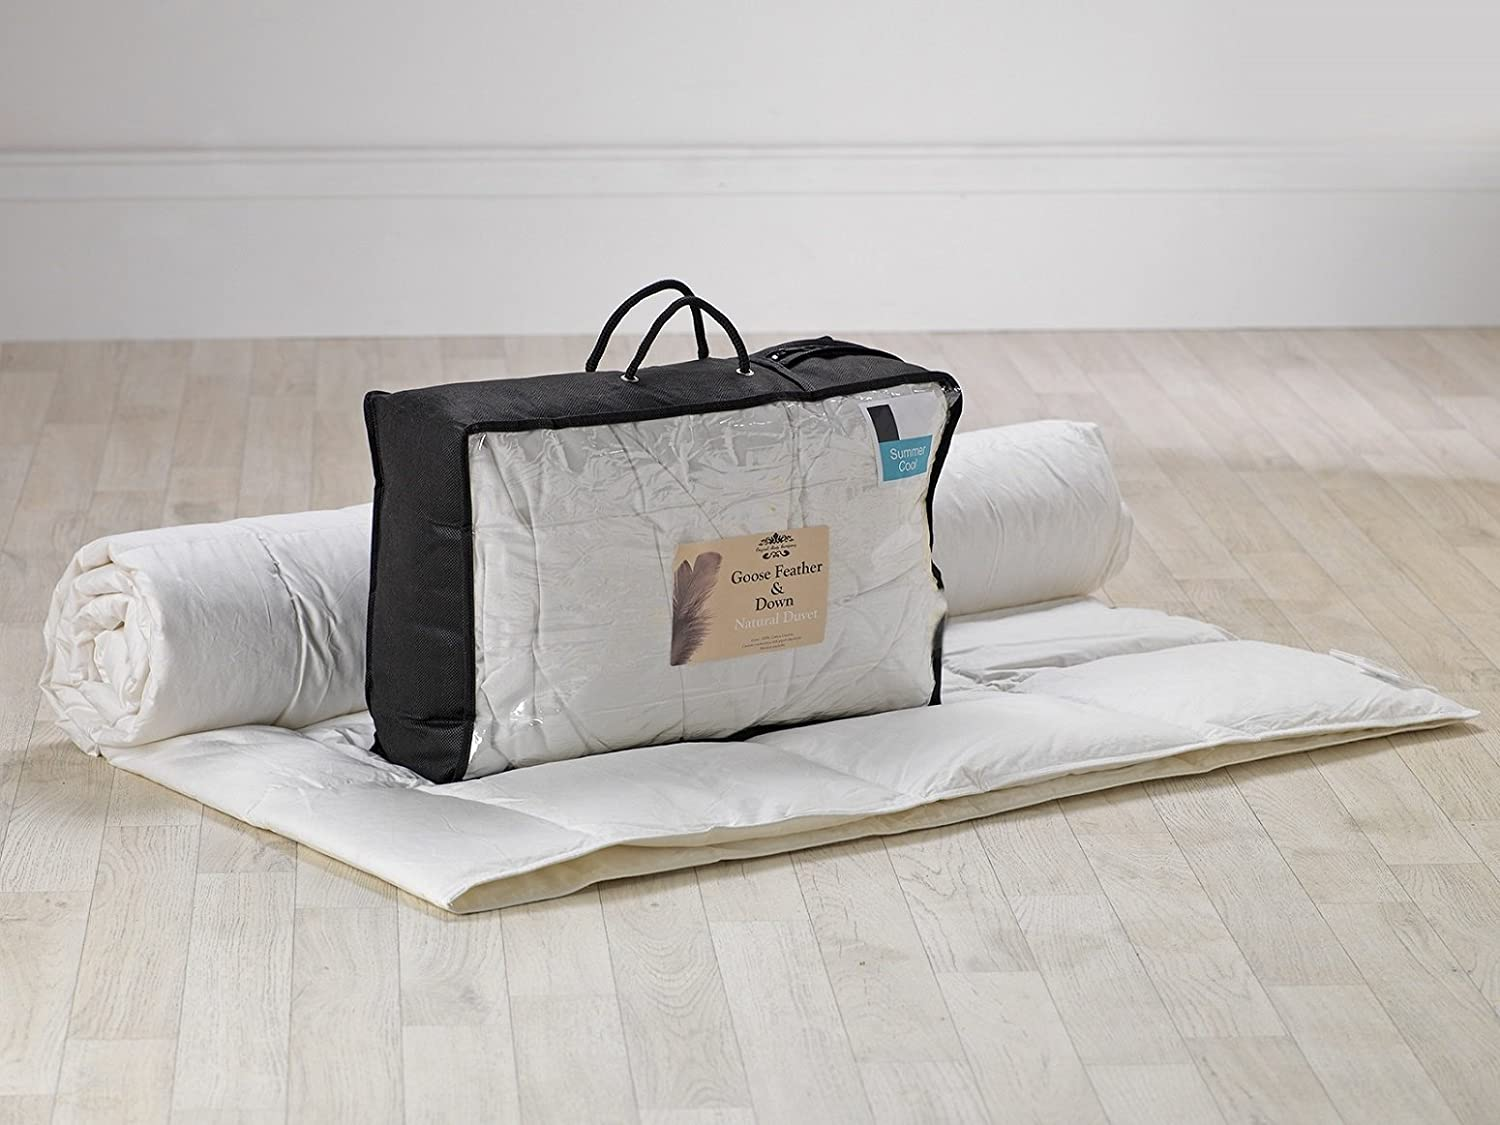 Goose Feather And Down Duvet 1.5 Tog